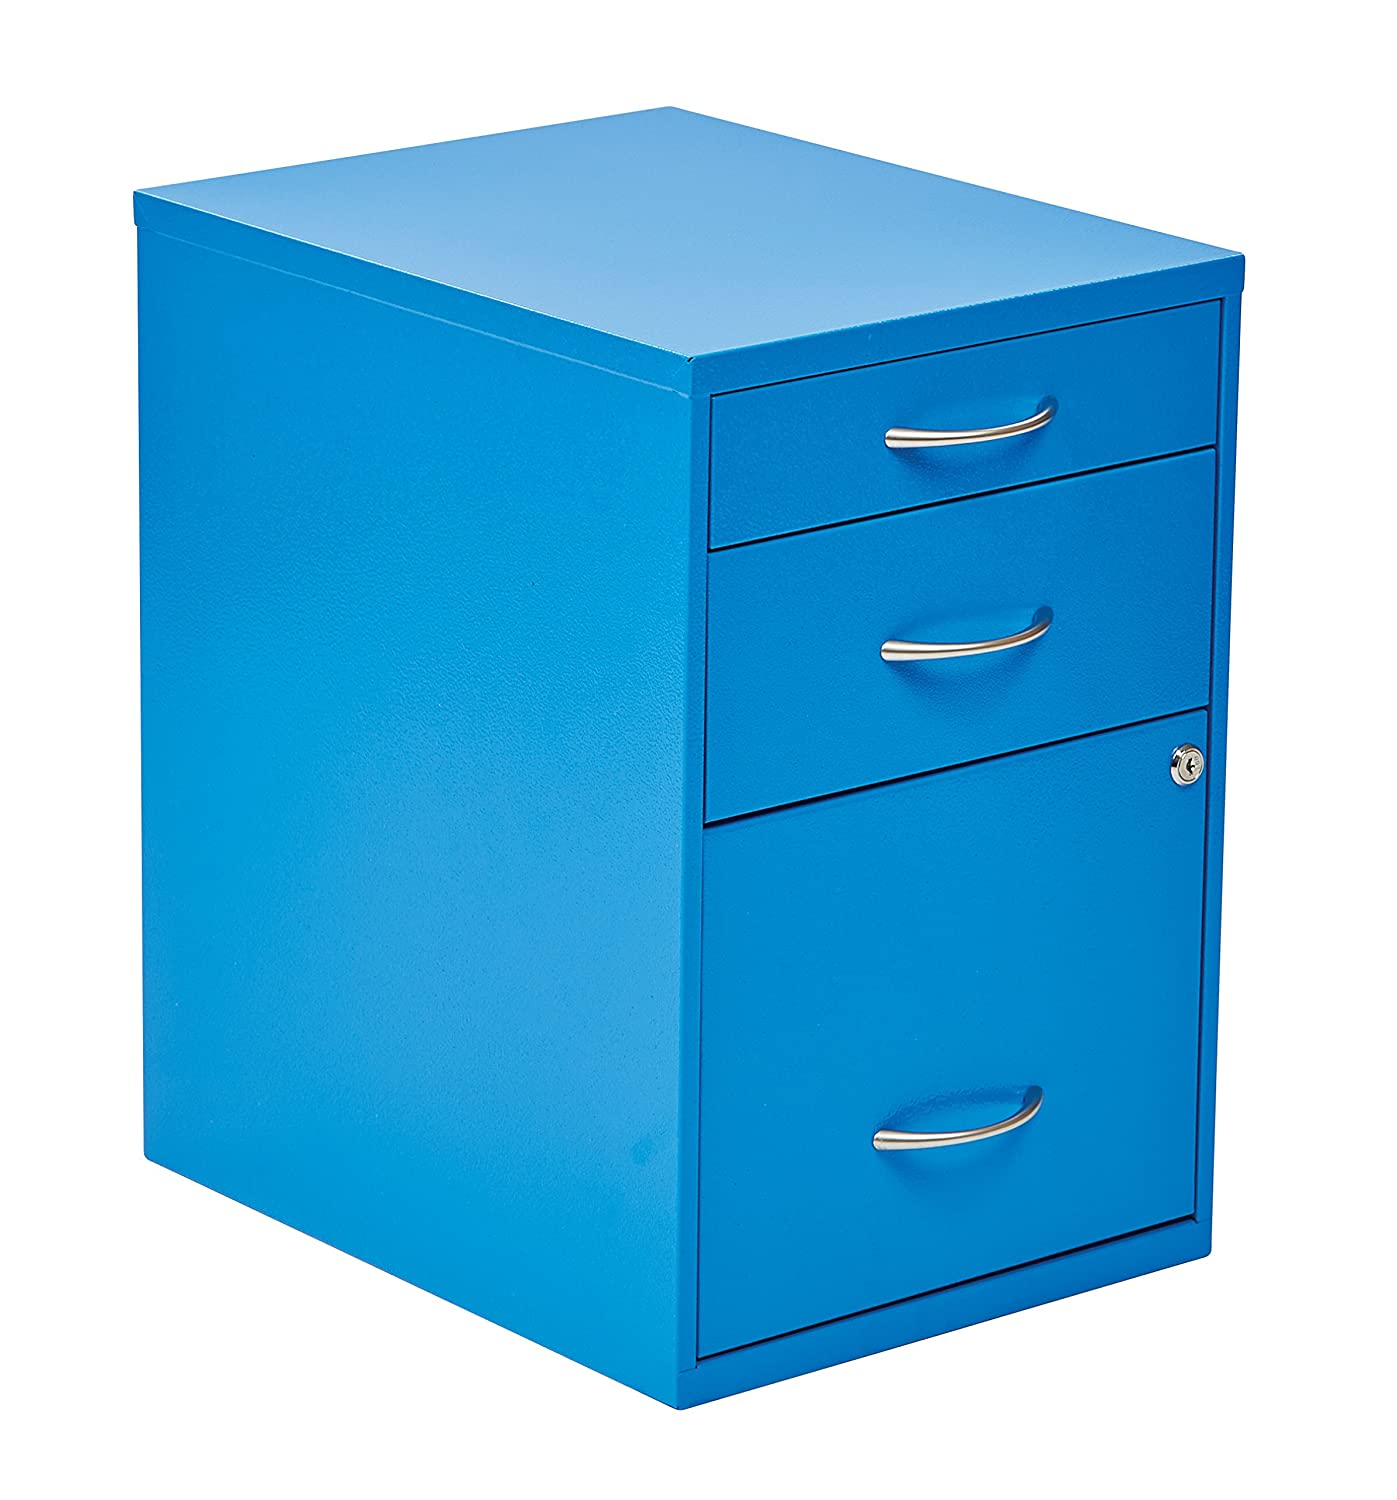 Merveilleux Amazon.com: OSP Designs HPBF7 Pencil, Box And Storage File Cabinet,  22 Inch, Blue: Home U0026 Kitchen